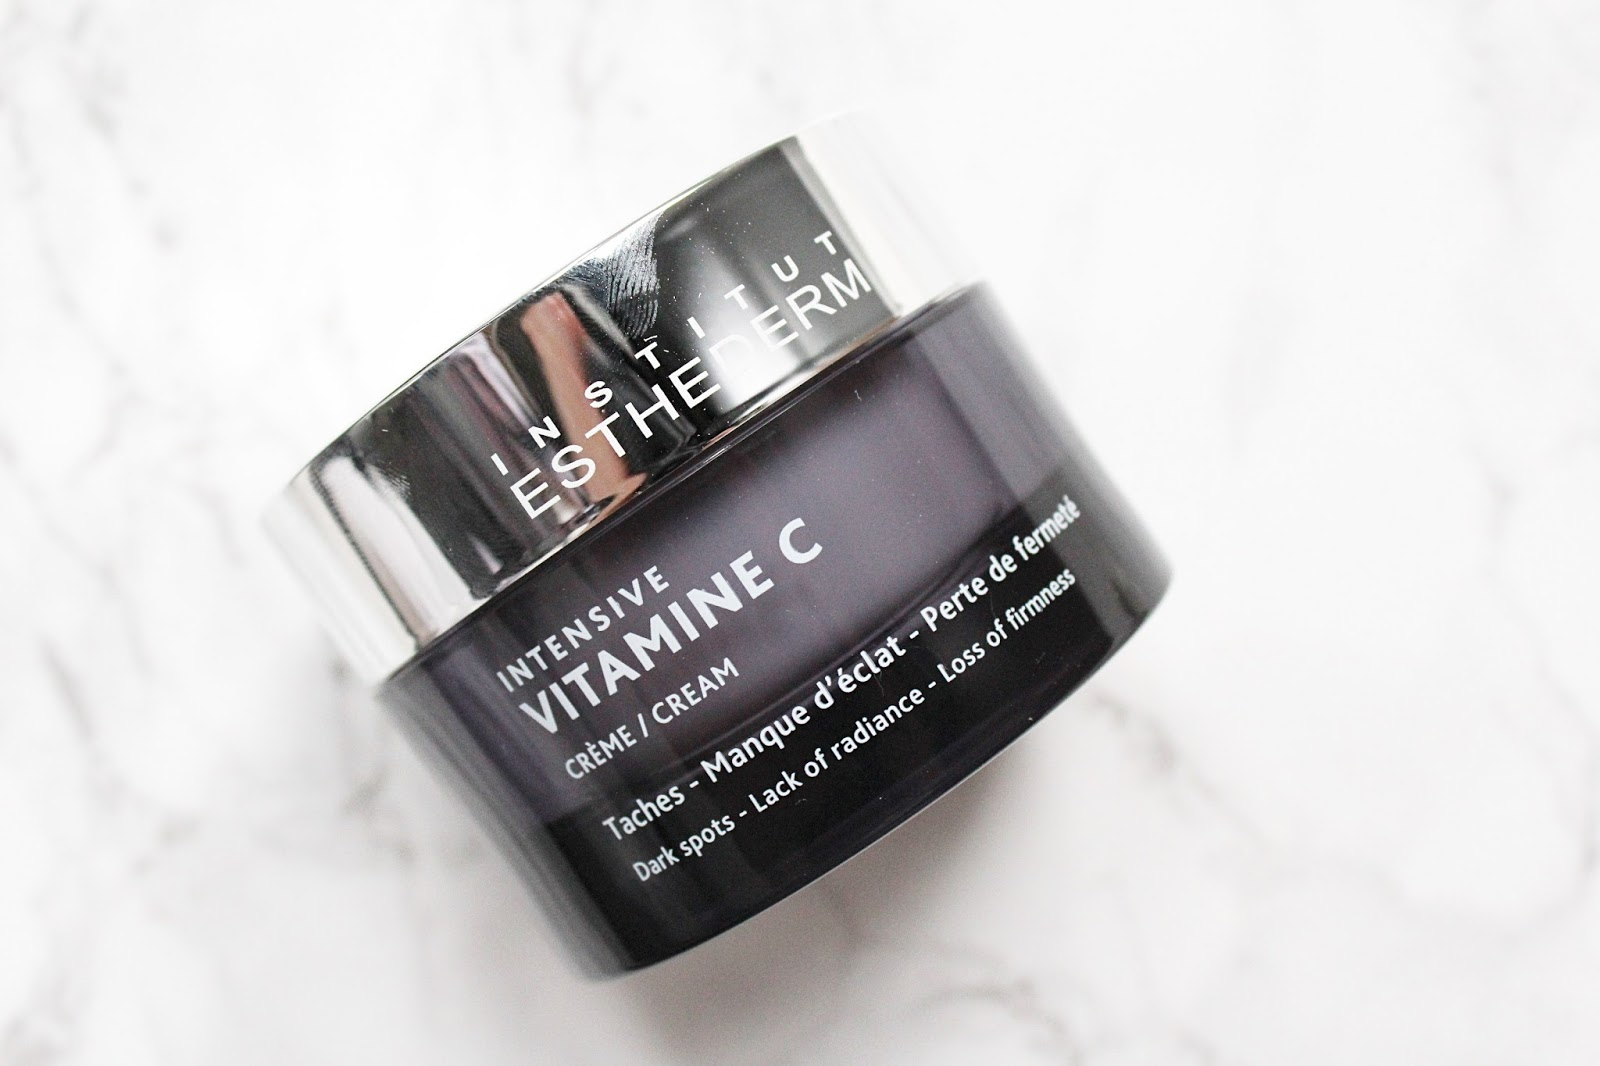 Institut Esthederm Intensive Vitamin C Cream